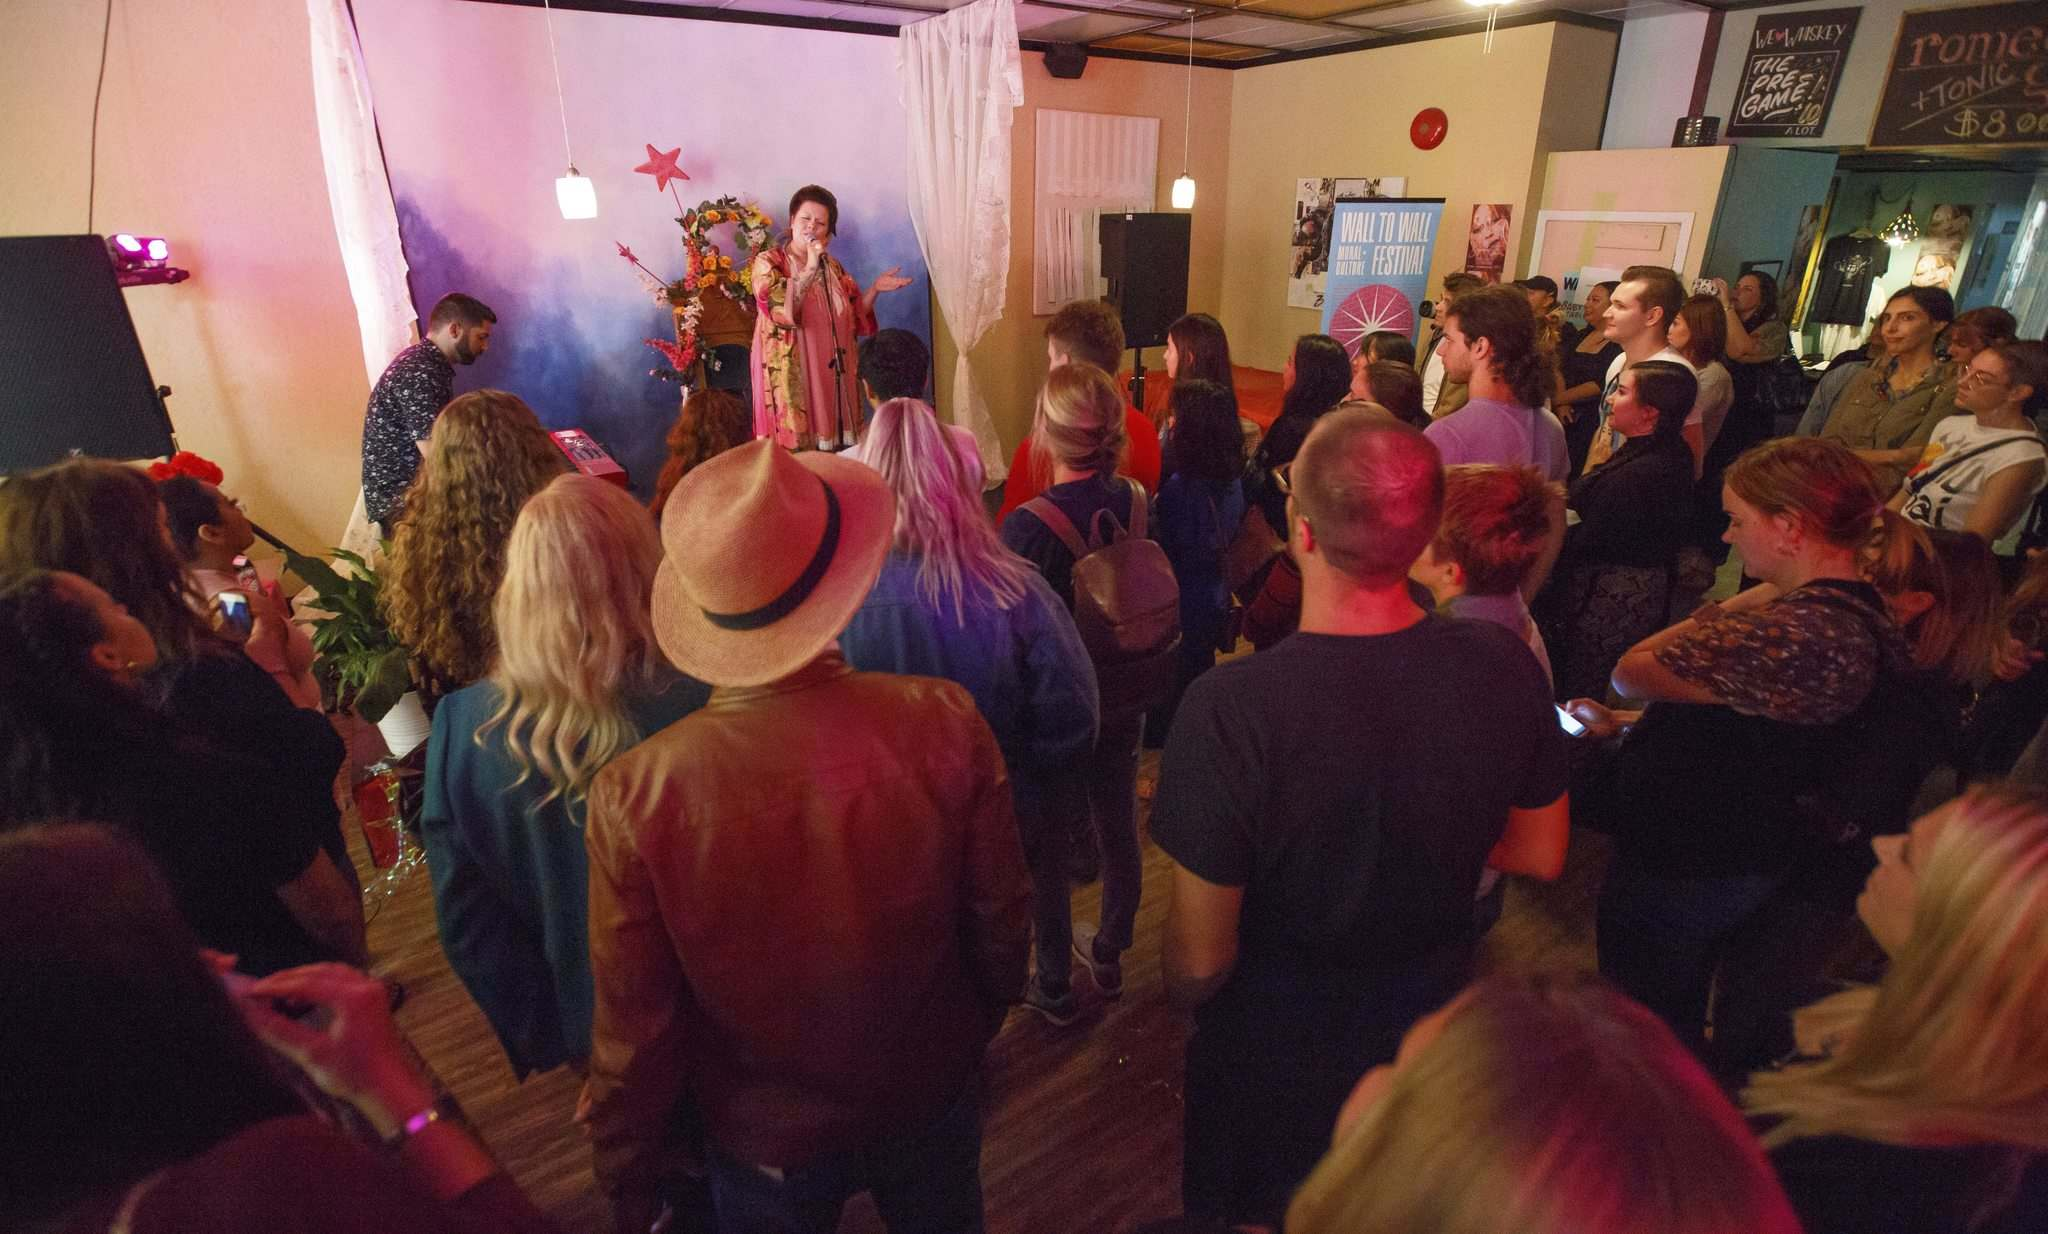 Begonia performs at a listening party for her album Fear at the Tallest Poppy restaurant last year. The record went on to top Canada's college radio chart for 10 weeks running. (Mike Deal / Free Press files)